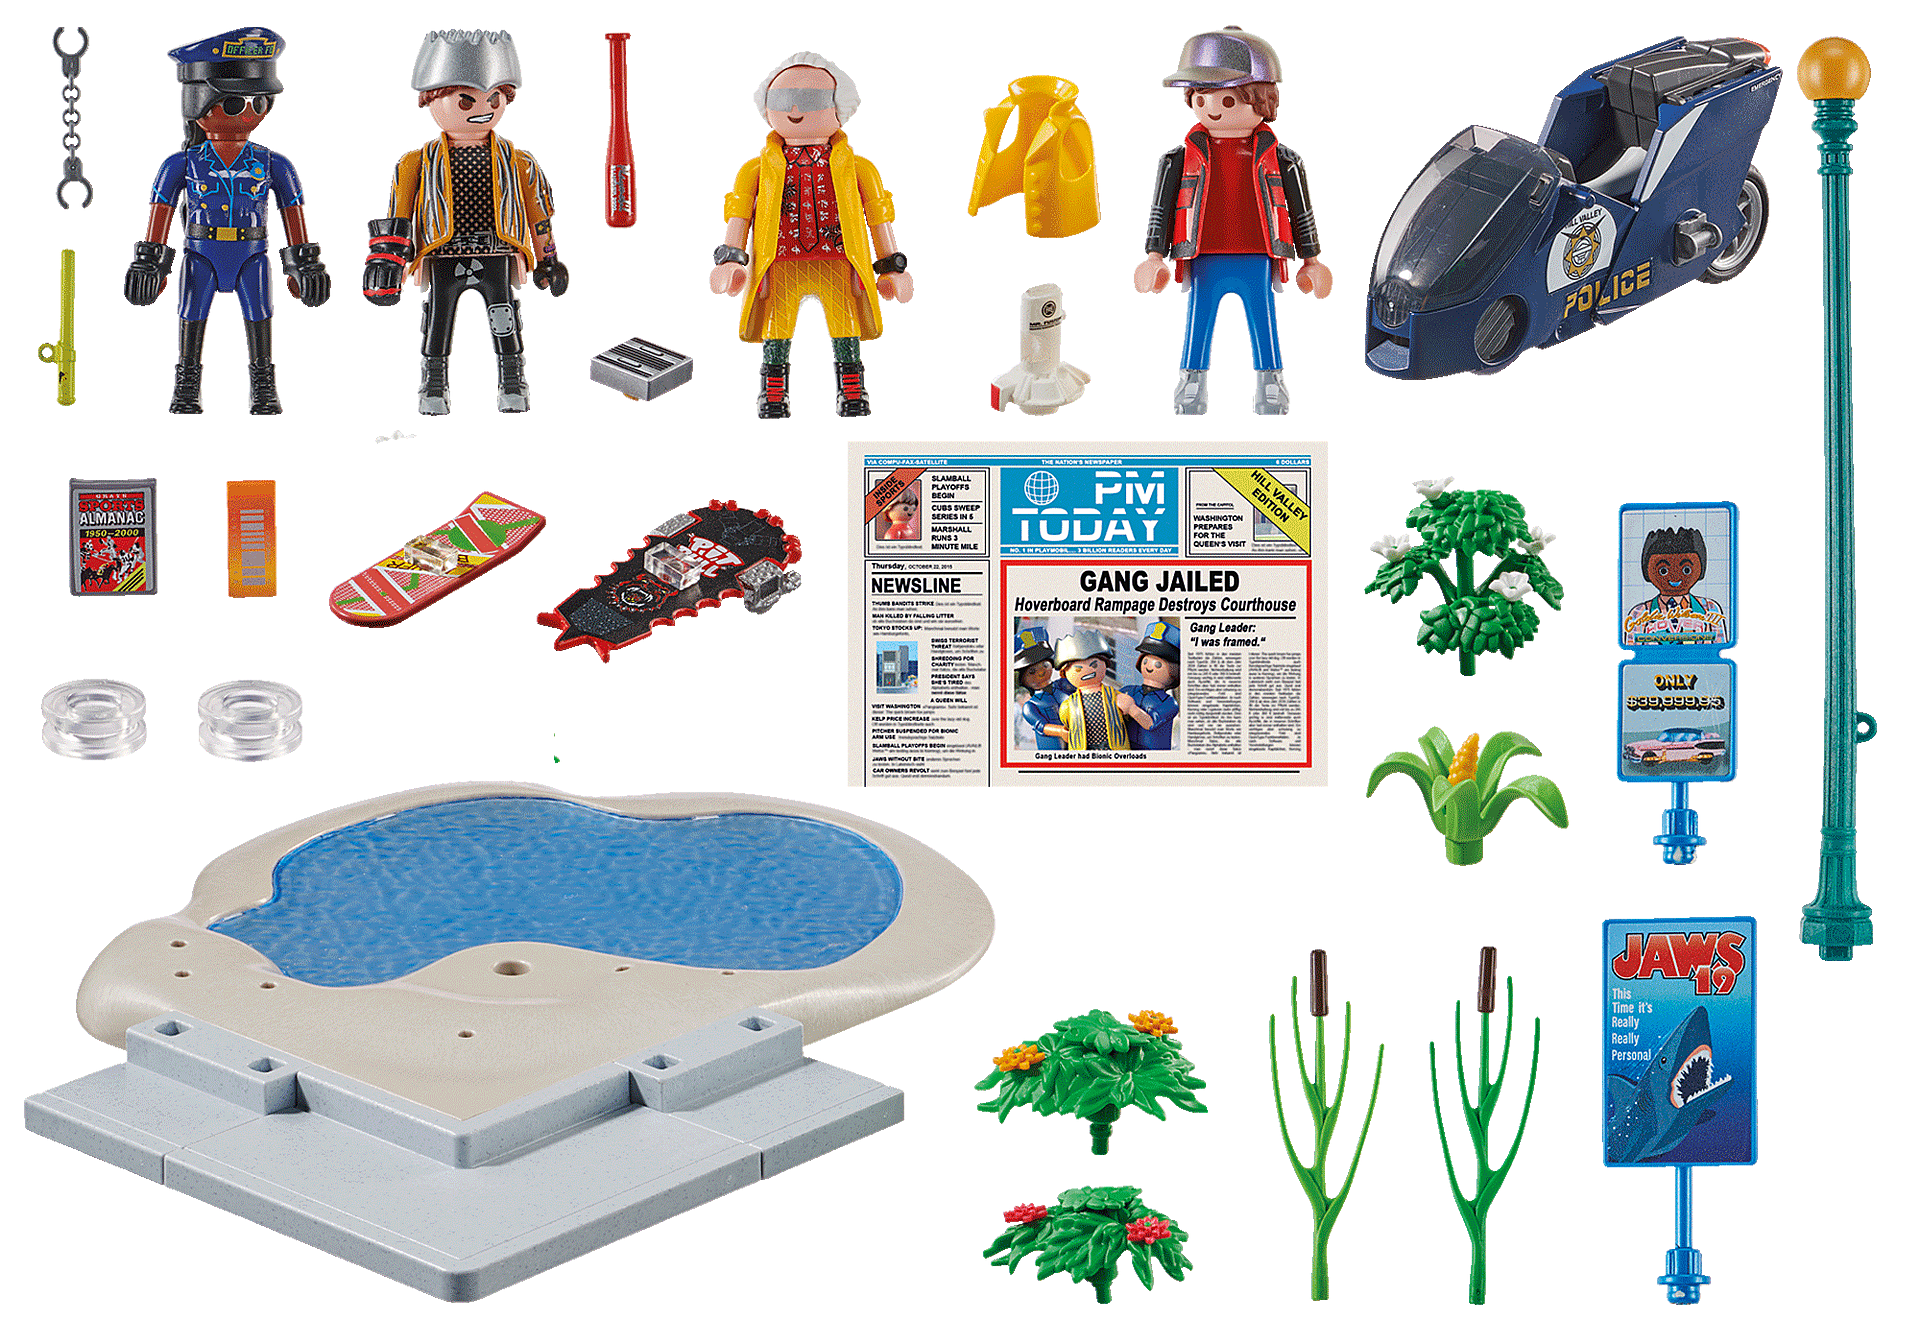 70634 Back to the Future Part II Verfolgung mit Hoverboard zoom image3